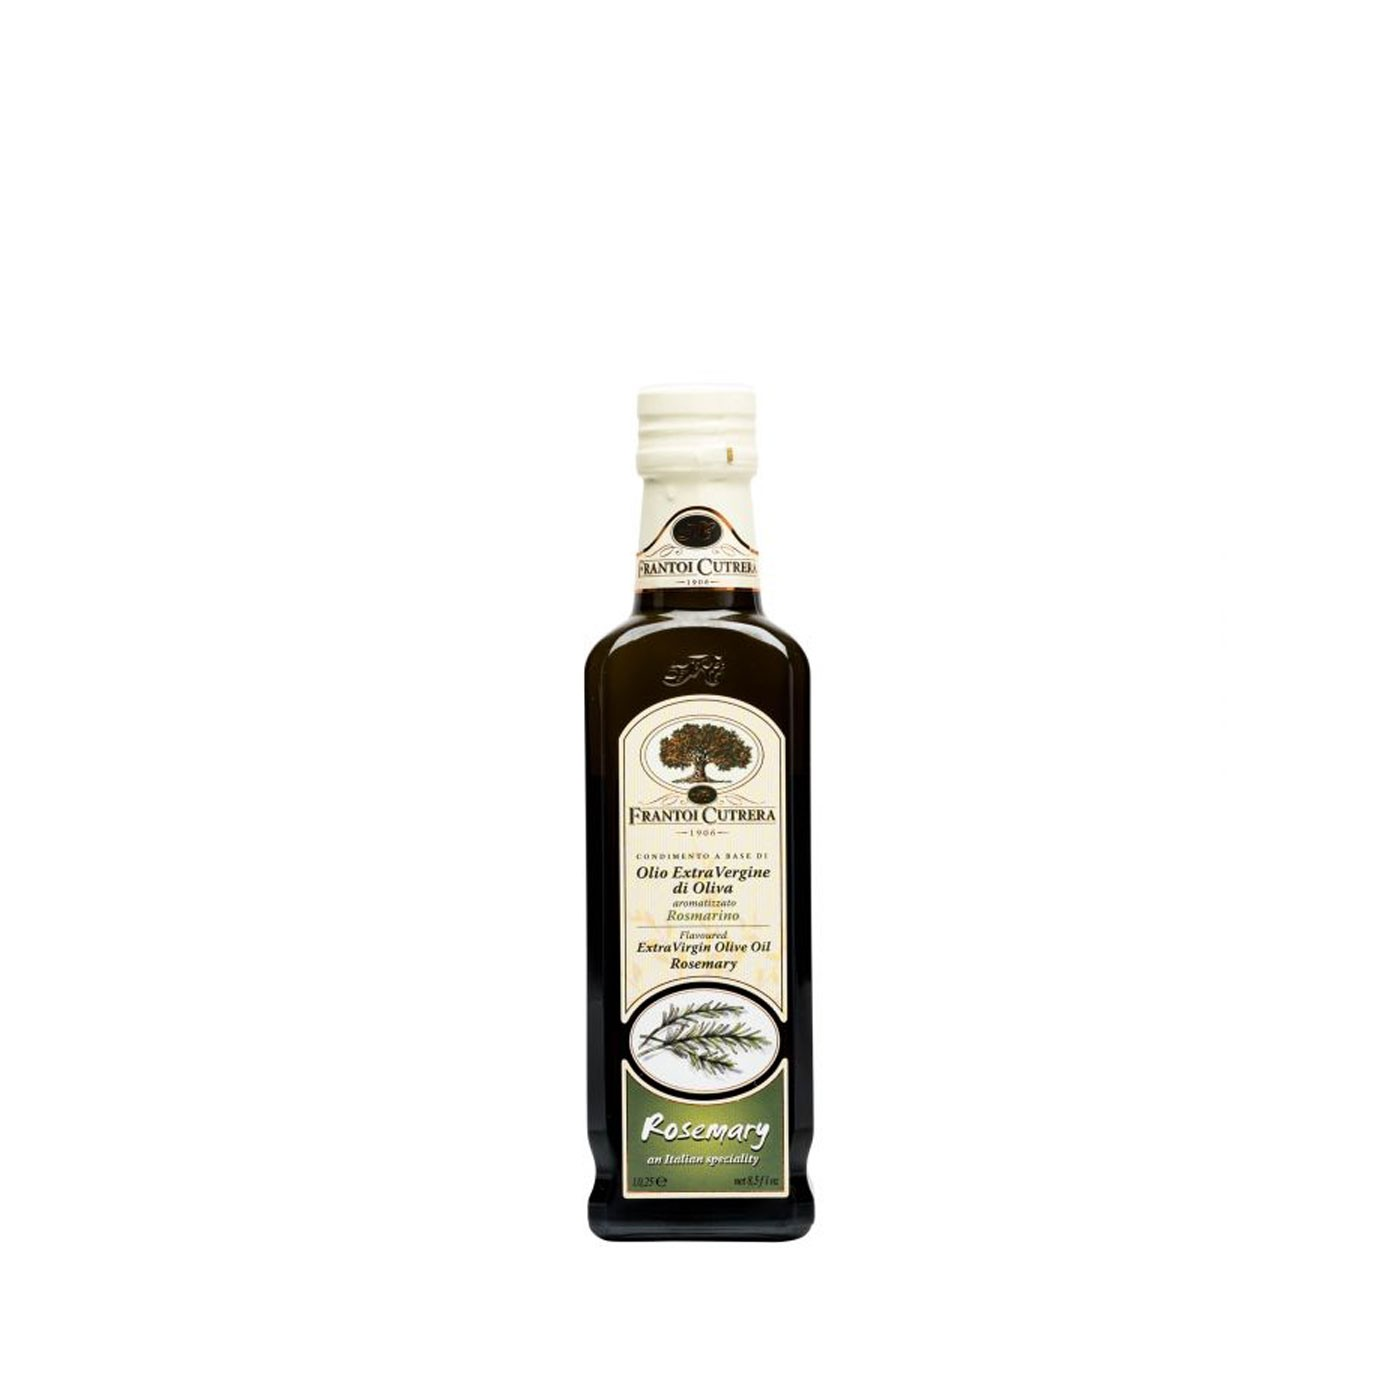 Rosemary Flavored Extra Virgin Olive Oil 8.45 oz